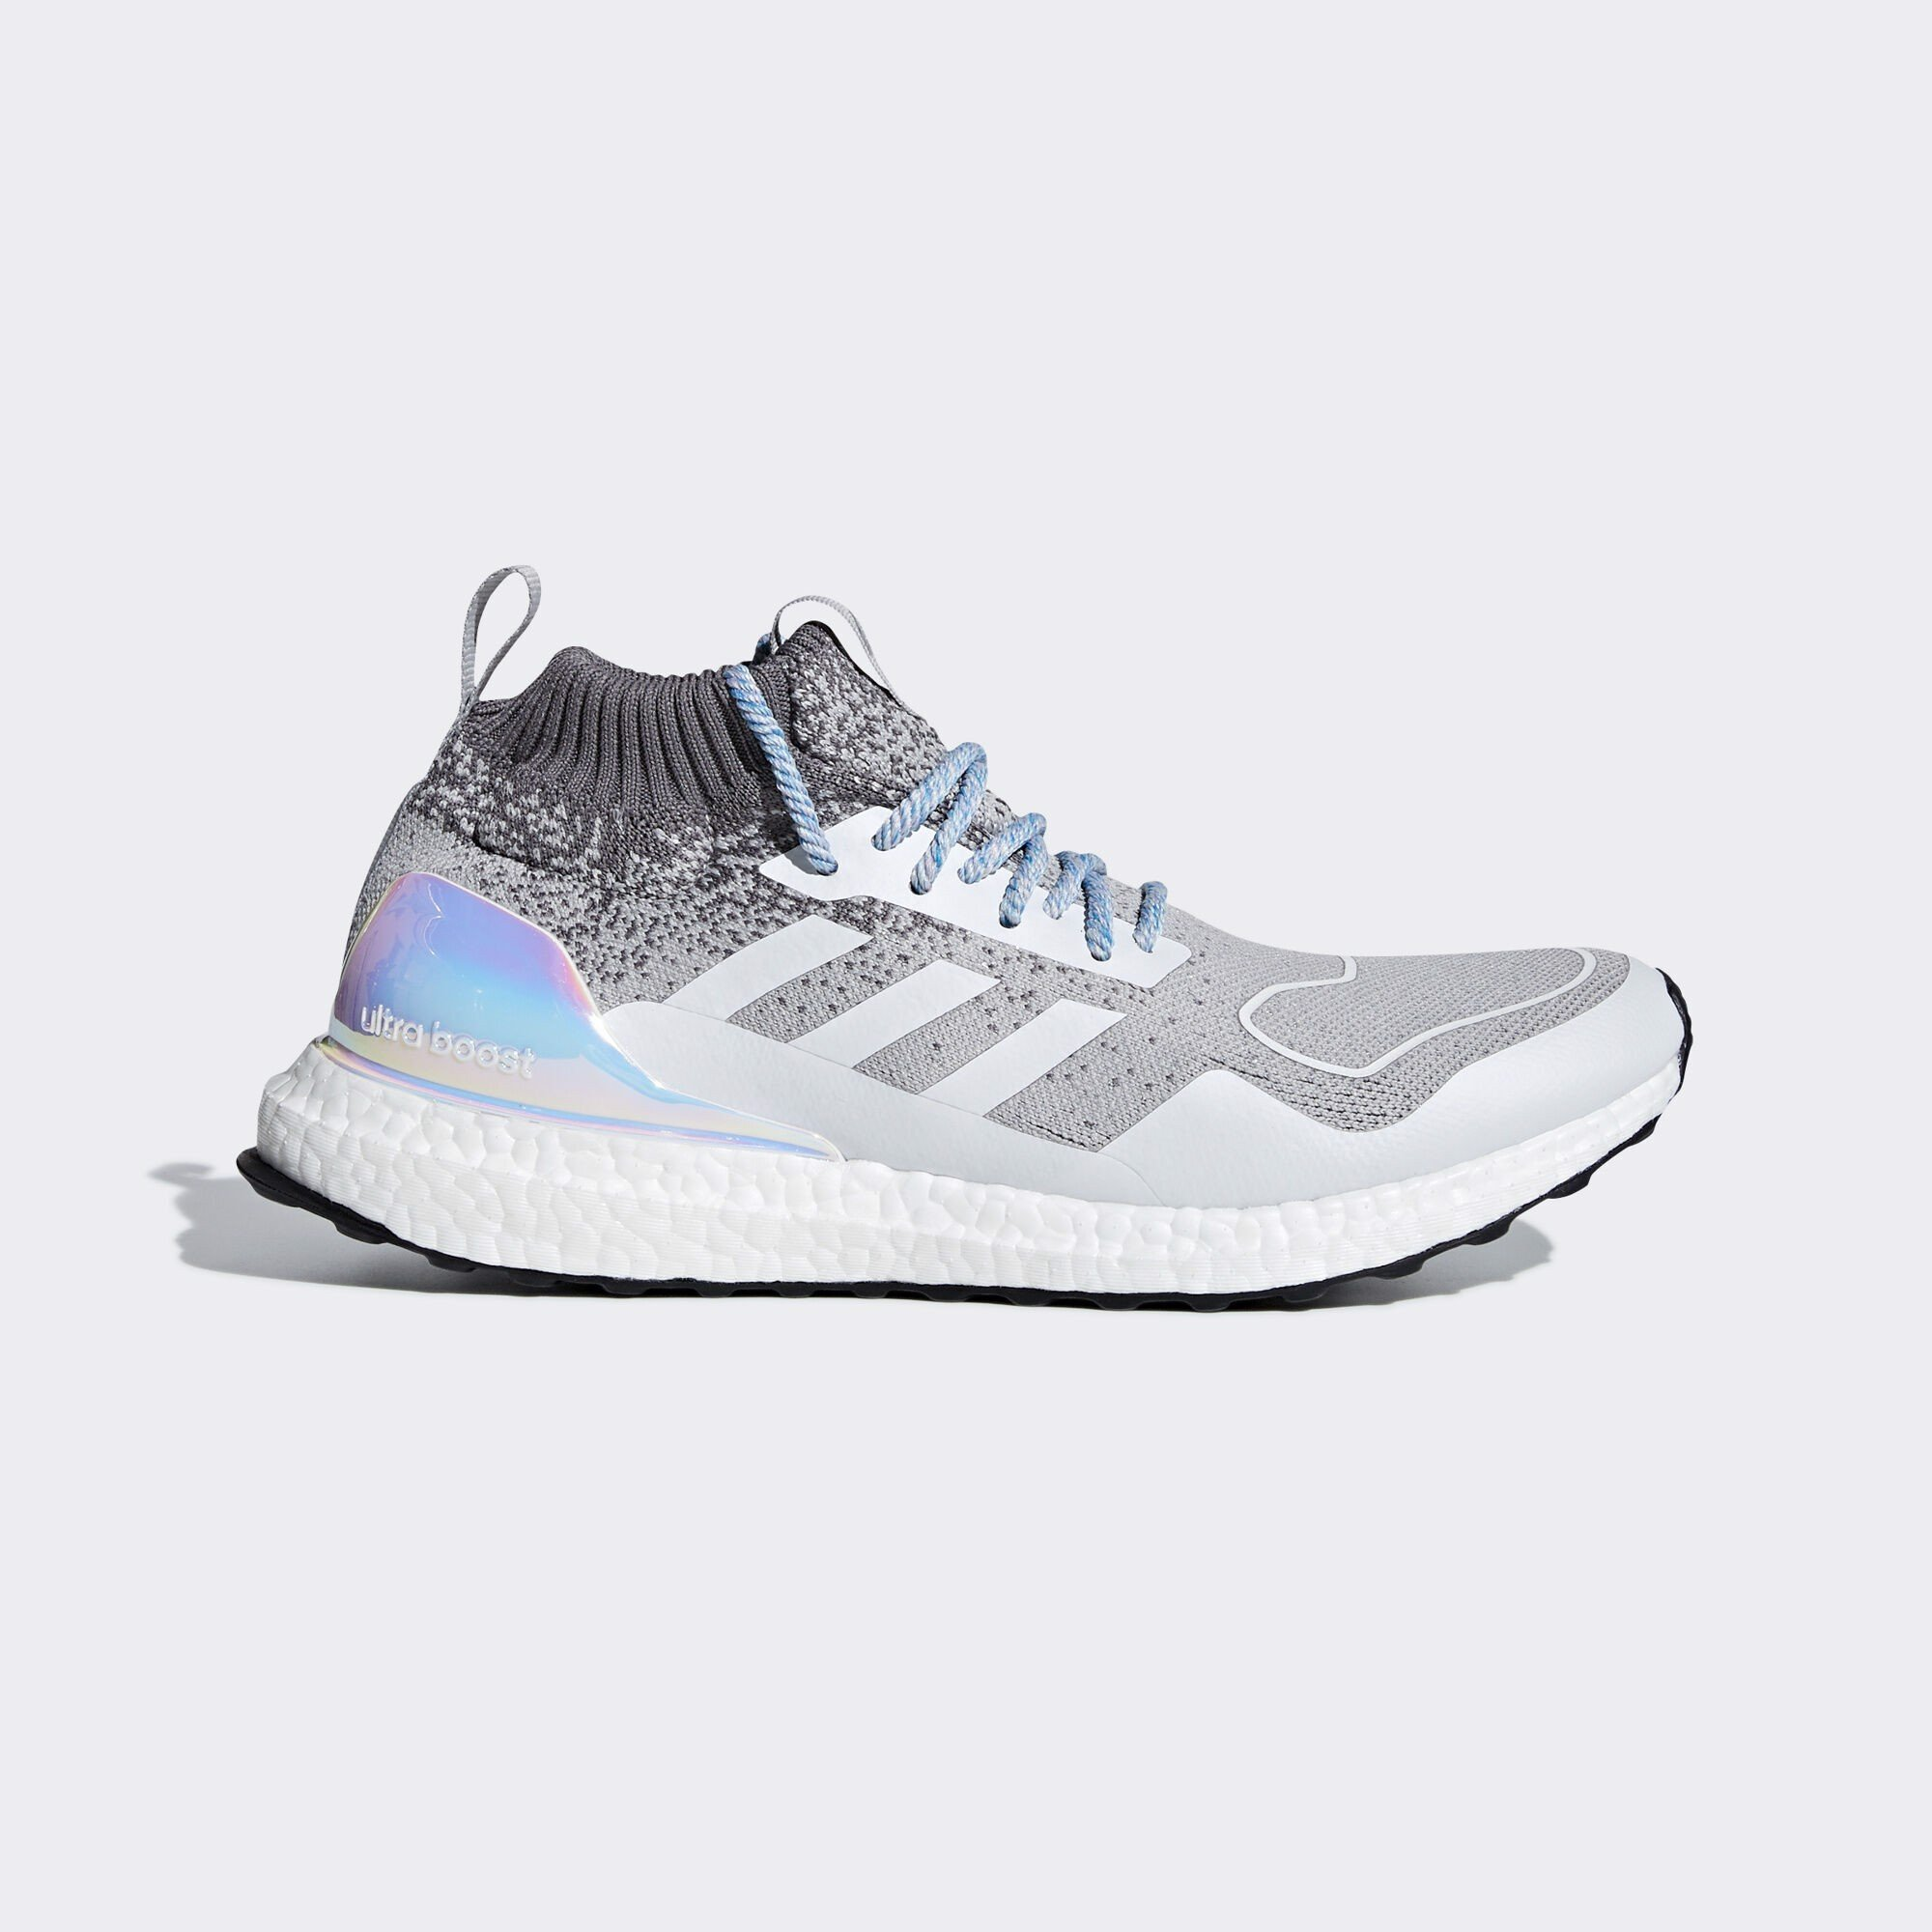 Ultraboost mid light granite